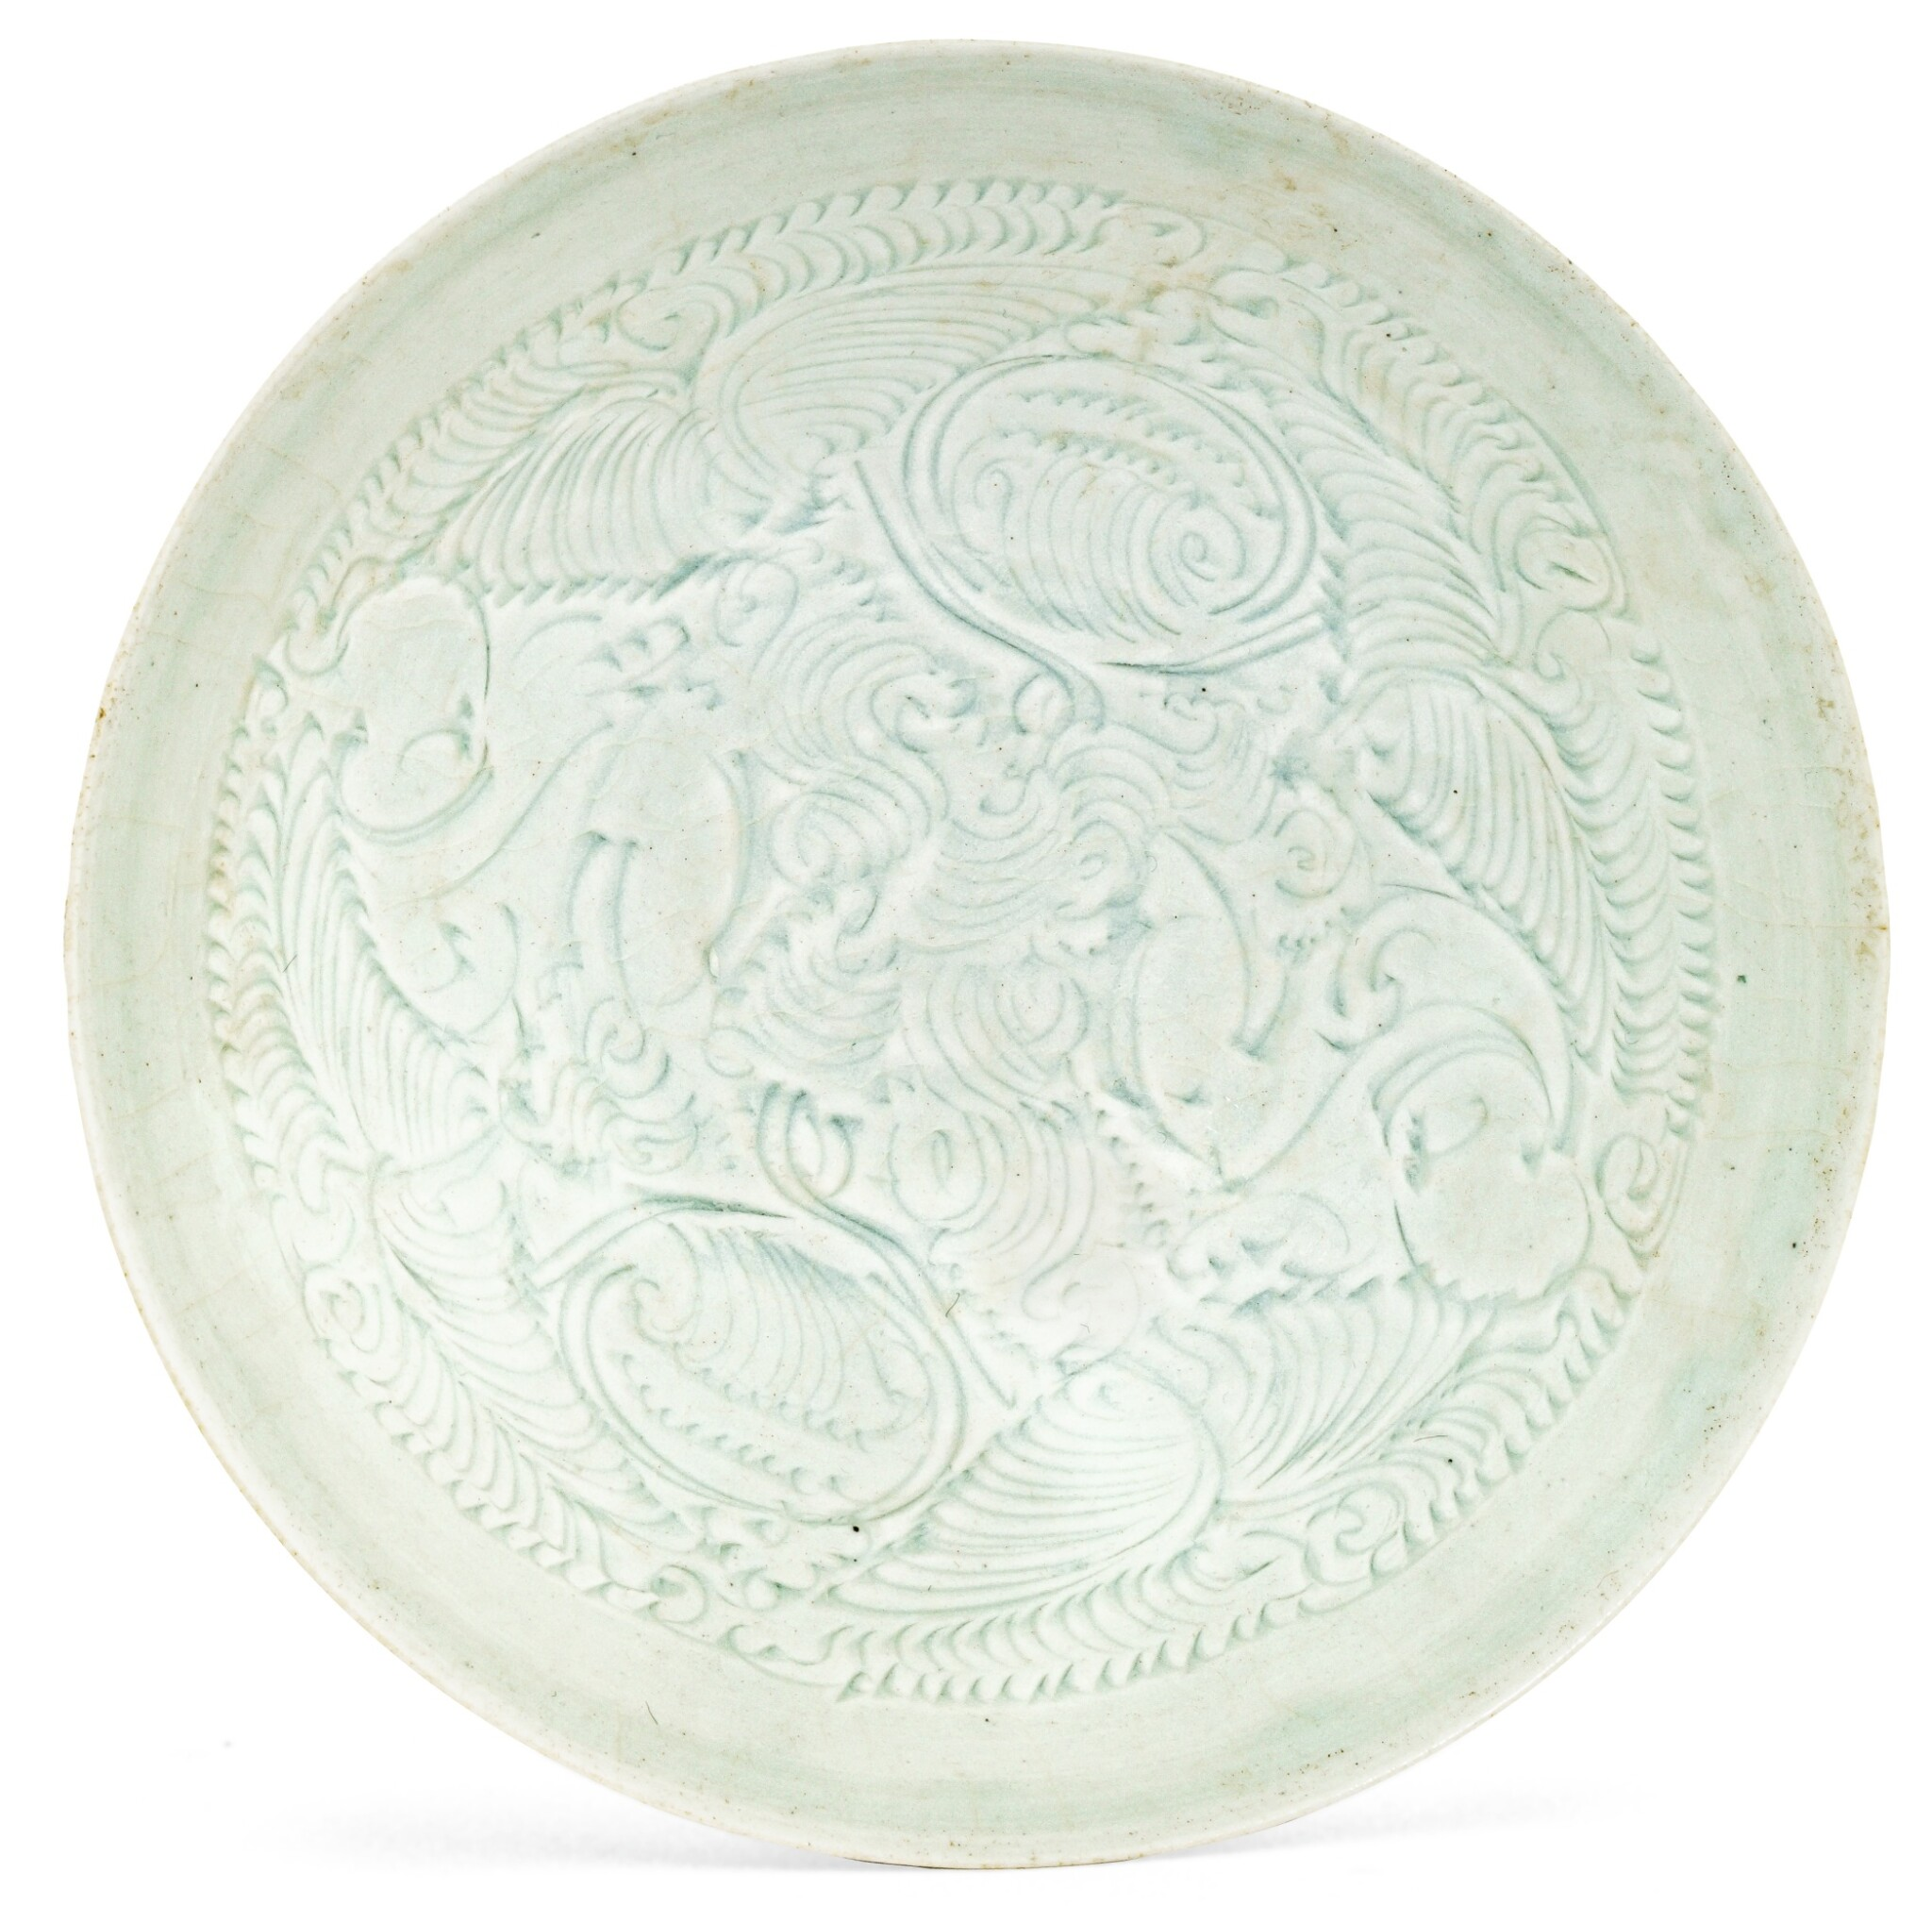 View full screen - View 1 of Lot 2. COUPE EN CÉRAMIQUE QINGBAI DYNASTIE SONG DU SUD | 南宋 青白釉刻嬰戲蓮紋盌 | A Qingbai carved 'Boys' bowl, Southern Song Dynasty.